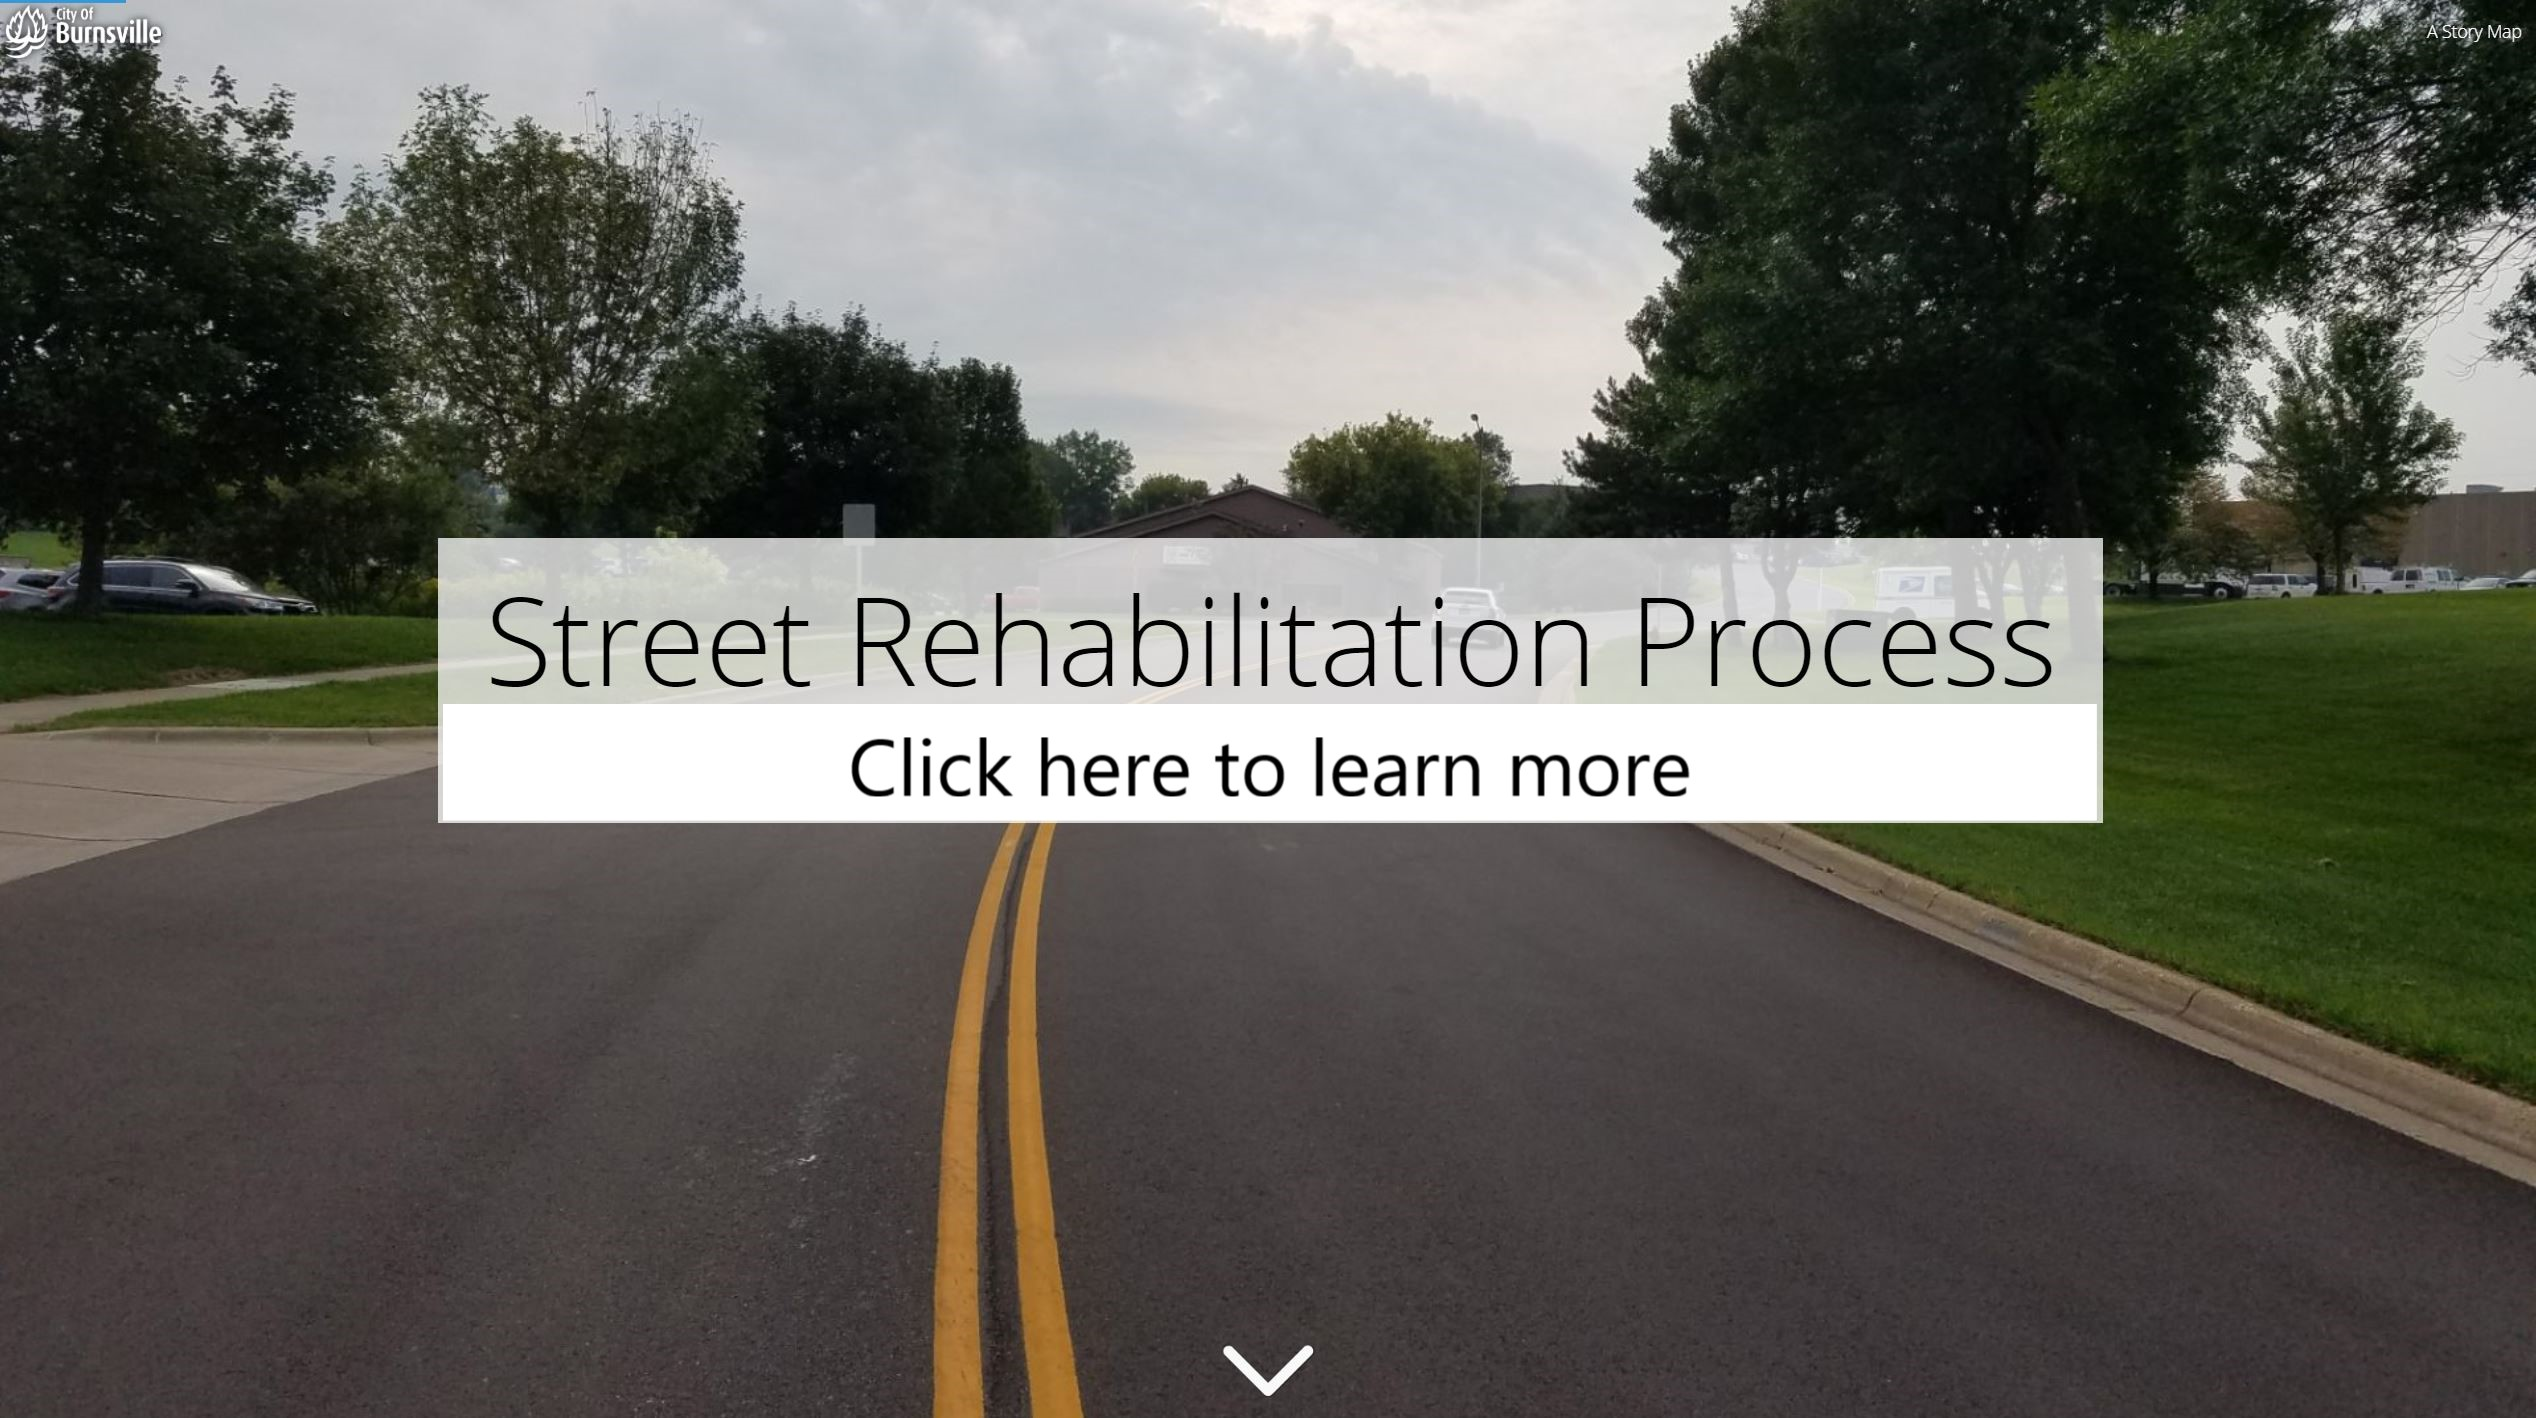 Click here to learn more about the street rehabilitation process